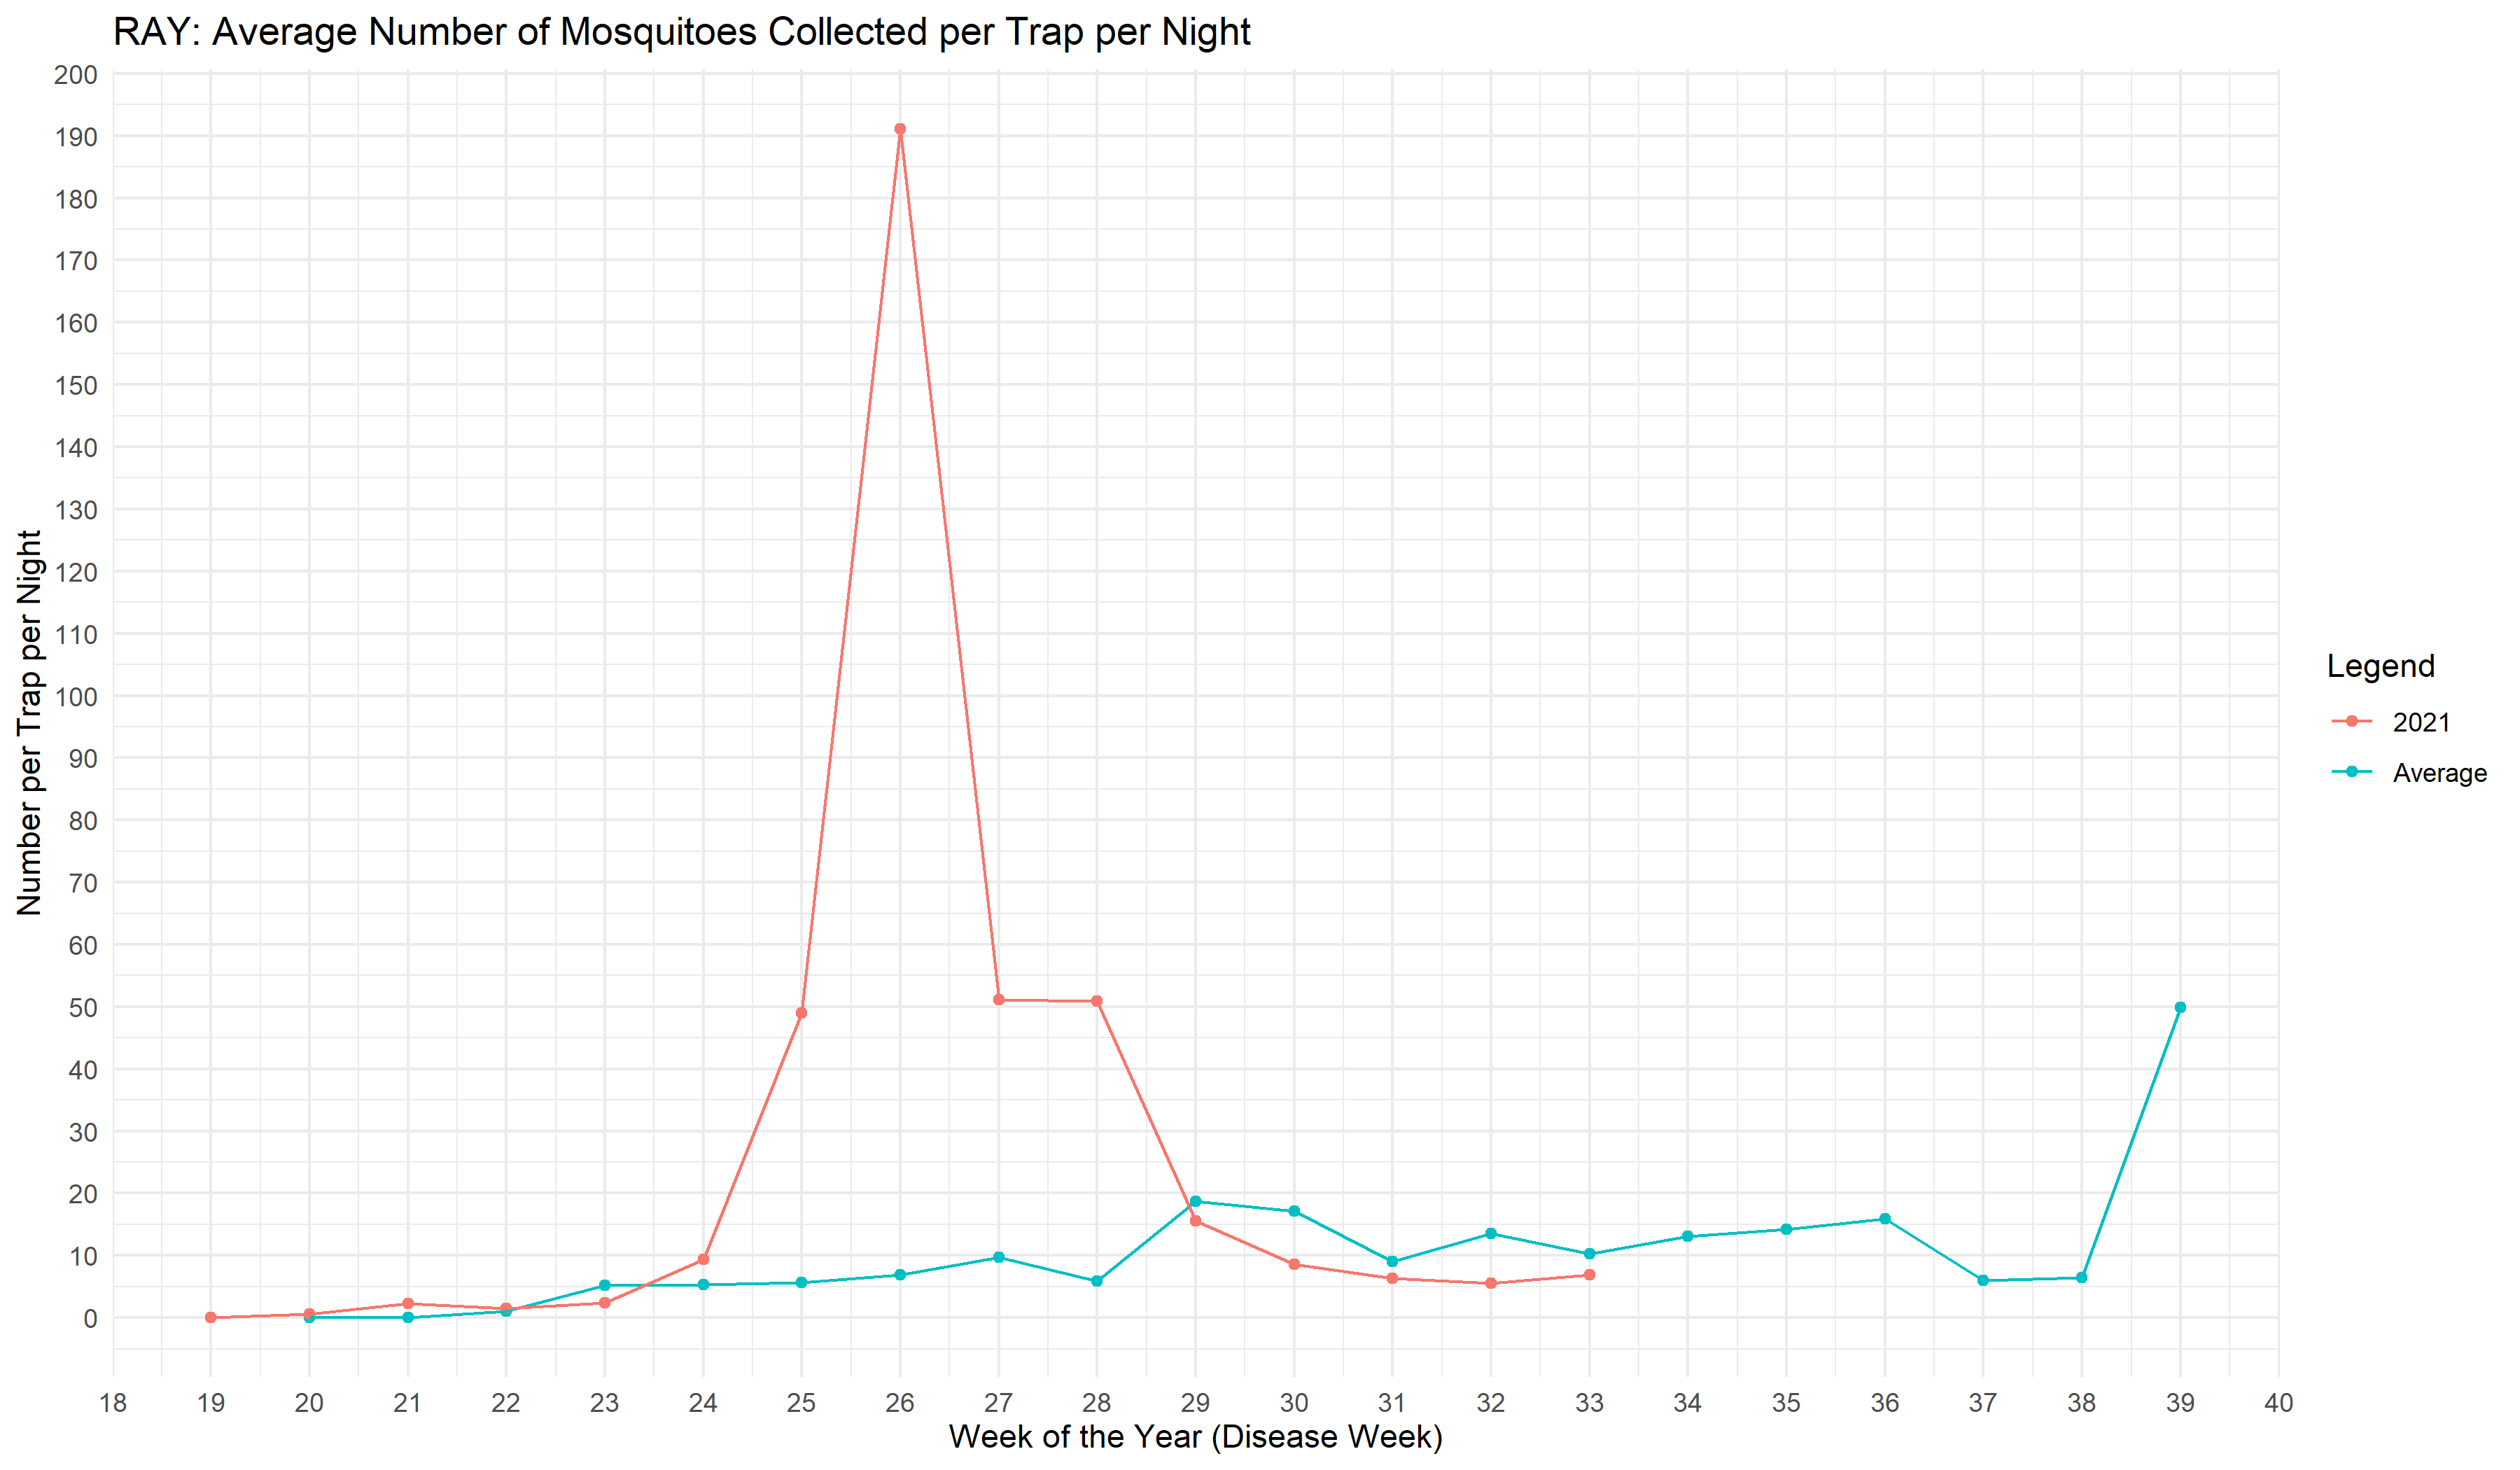 Graph depicting mosquito trap counts for Weeks 18 - 33 of 2021 in Ray